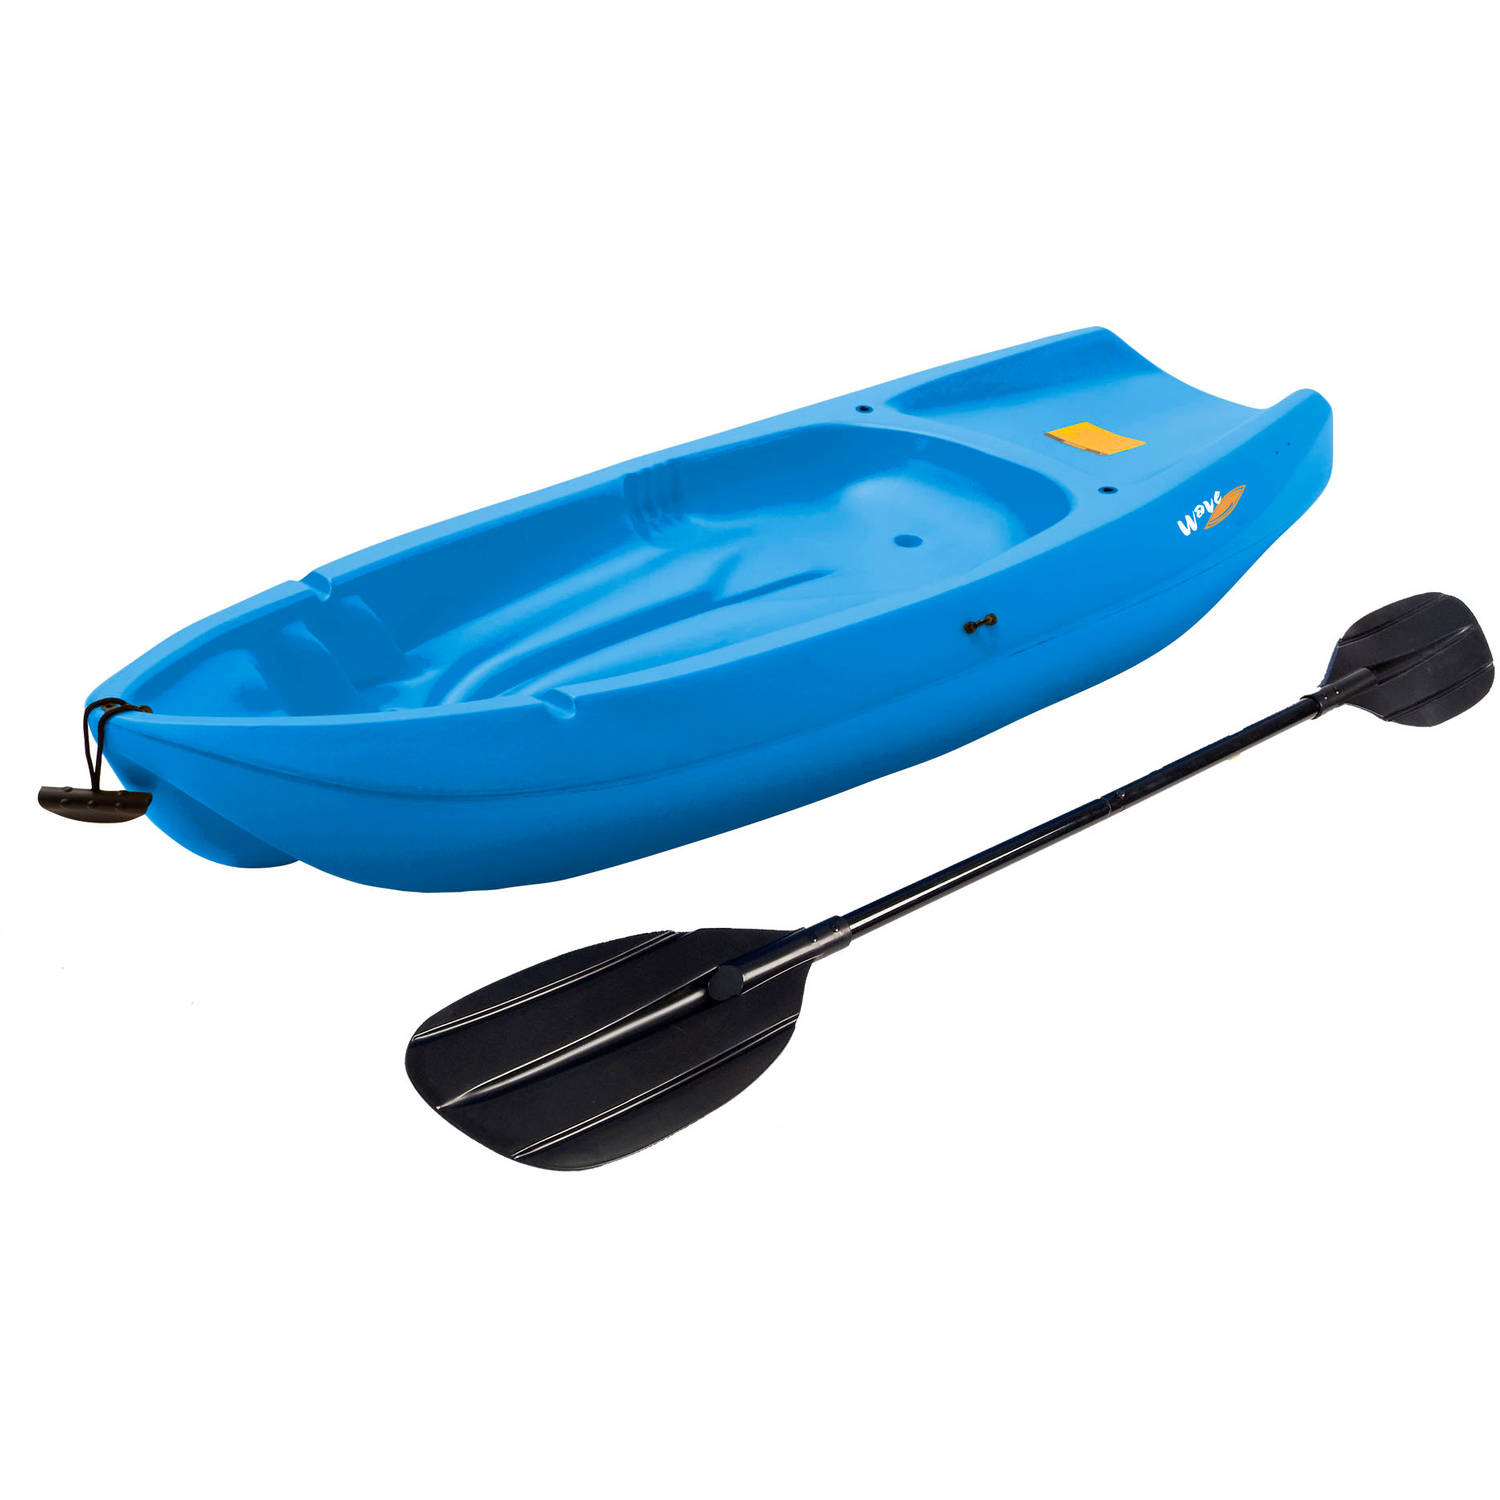 Lifetime 6 1 Man Wave Youth Kayak with Bonus Paddle Walmart